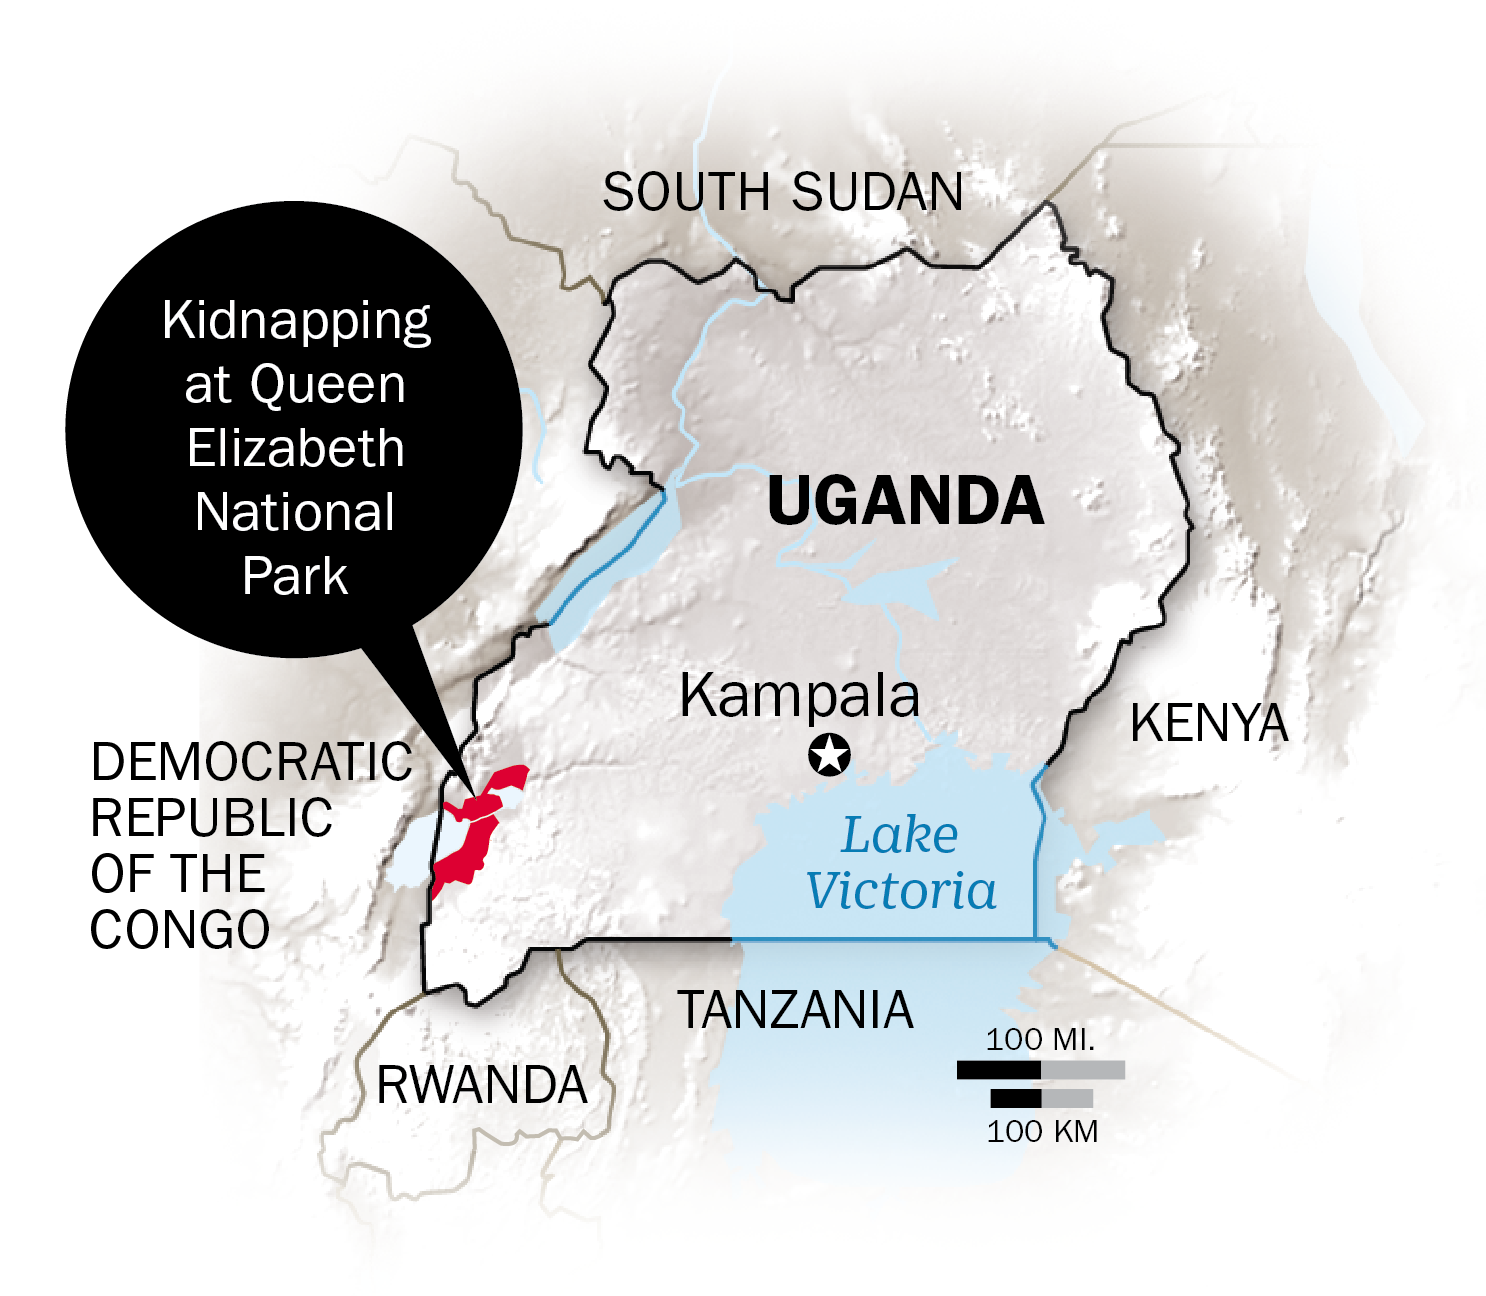 Uganda's Queen Elizabeth National Park shares a porous border with the Democratic Republic of Congo, where rebel and criminal groups are active